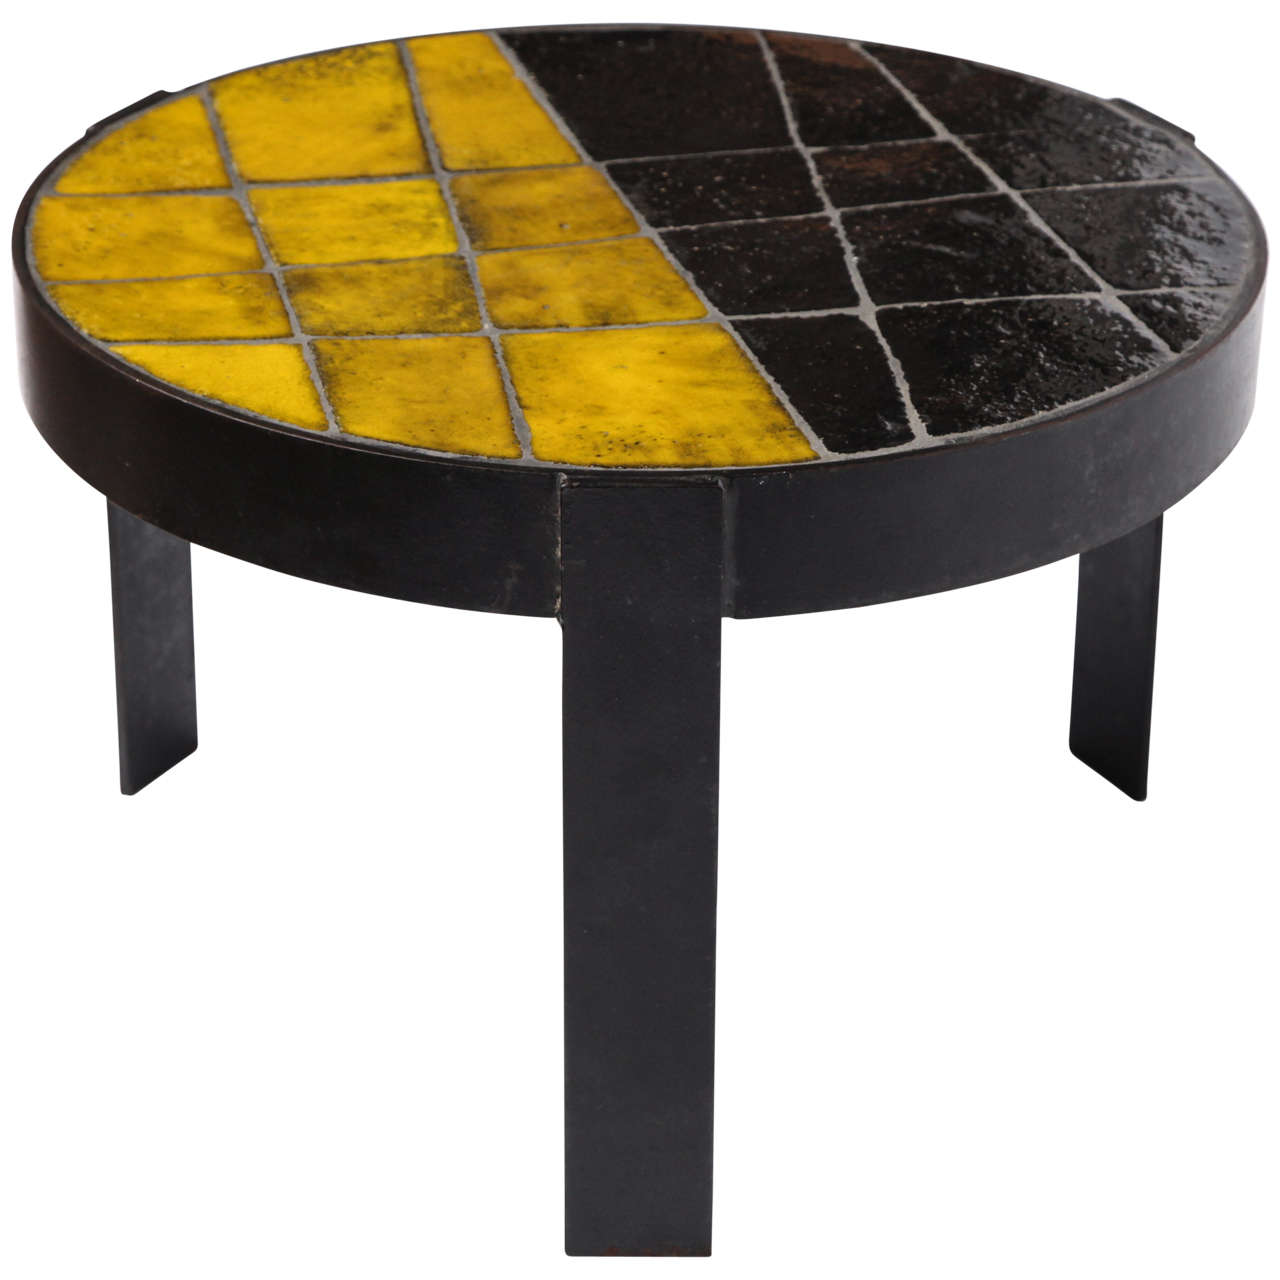 Unusual ceramic tile top table at 1stdibs for Unusual tables